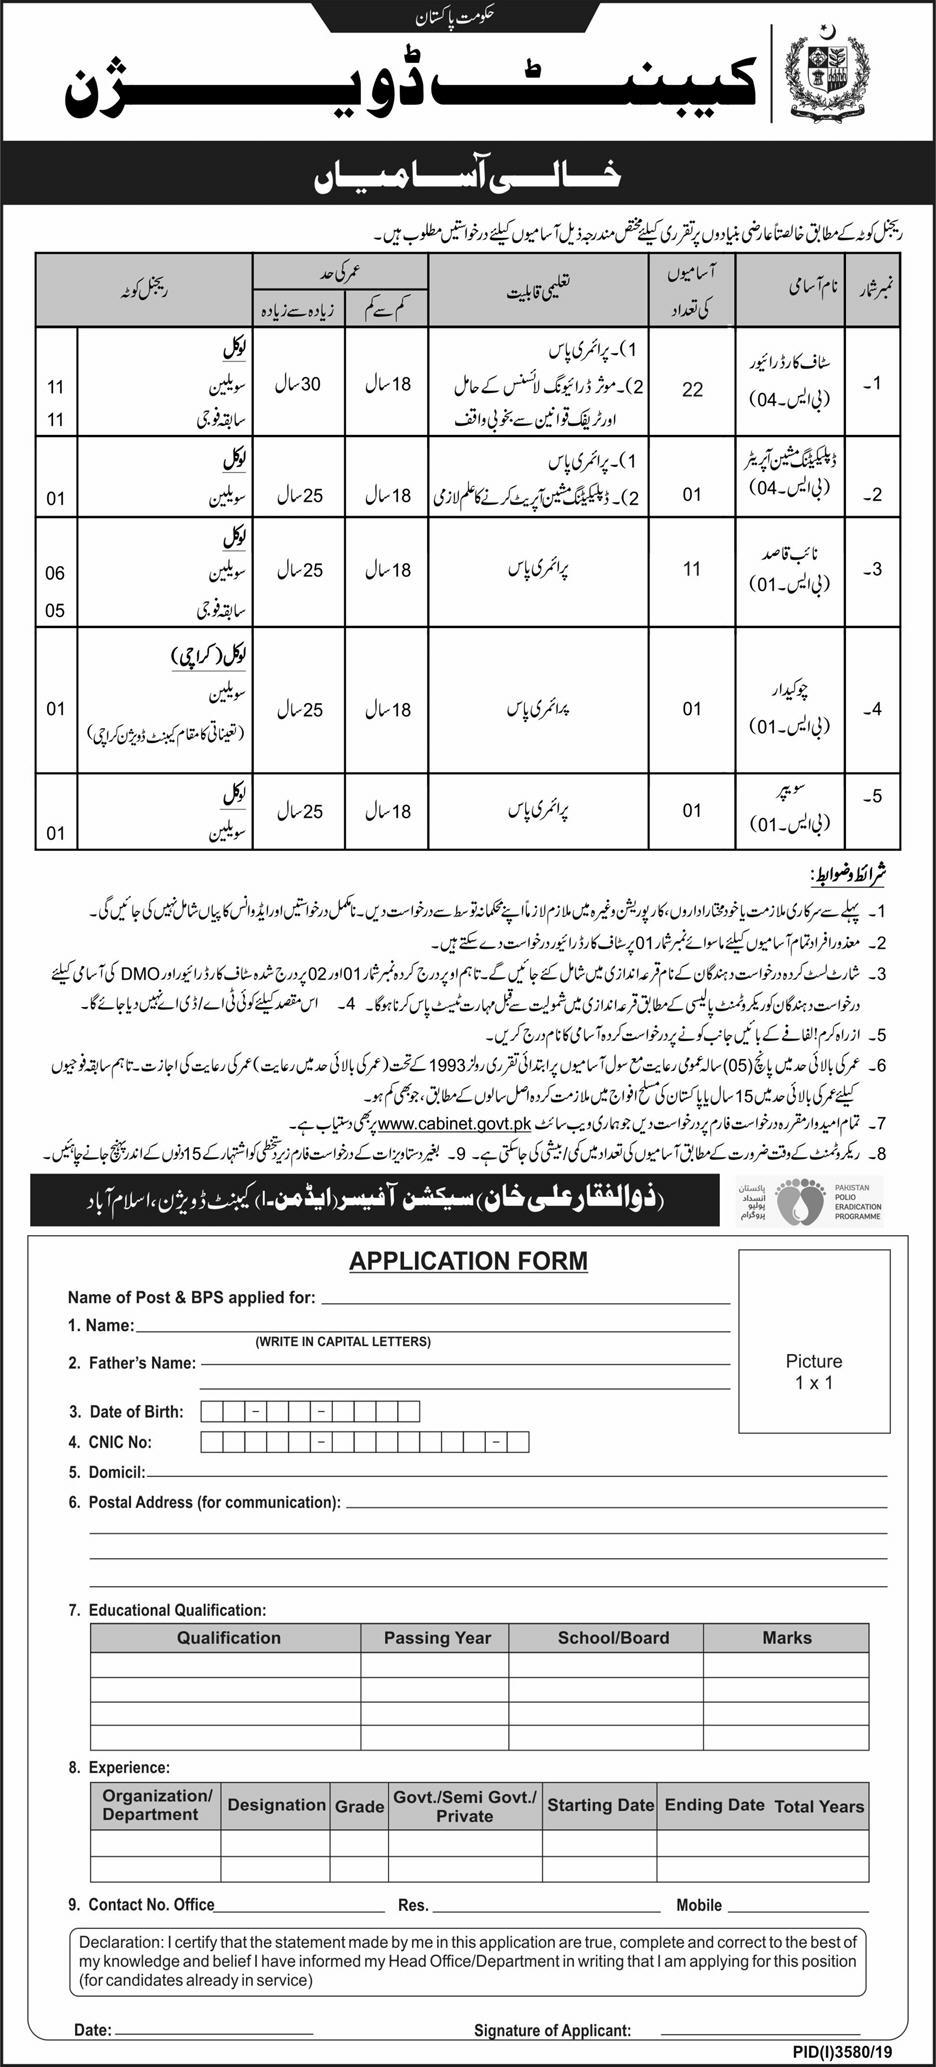 Cabinet Division Jobs 2020 Application Form Pdf - Employees with I-9 Form 2020 Pdf